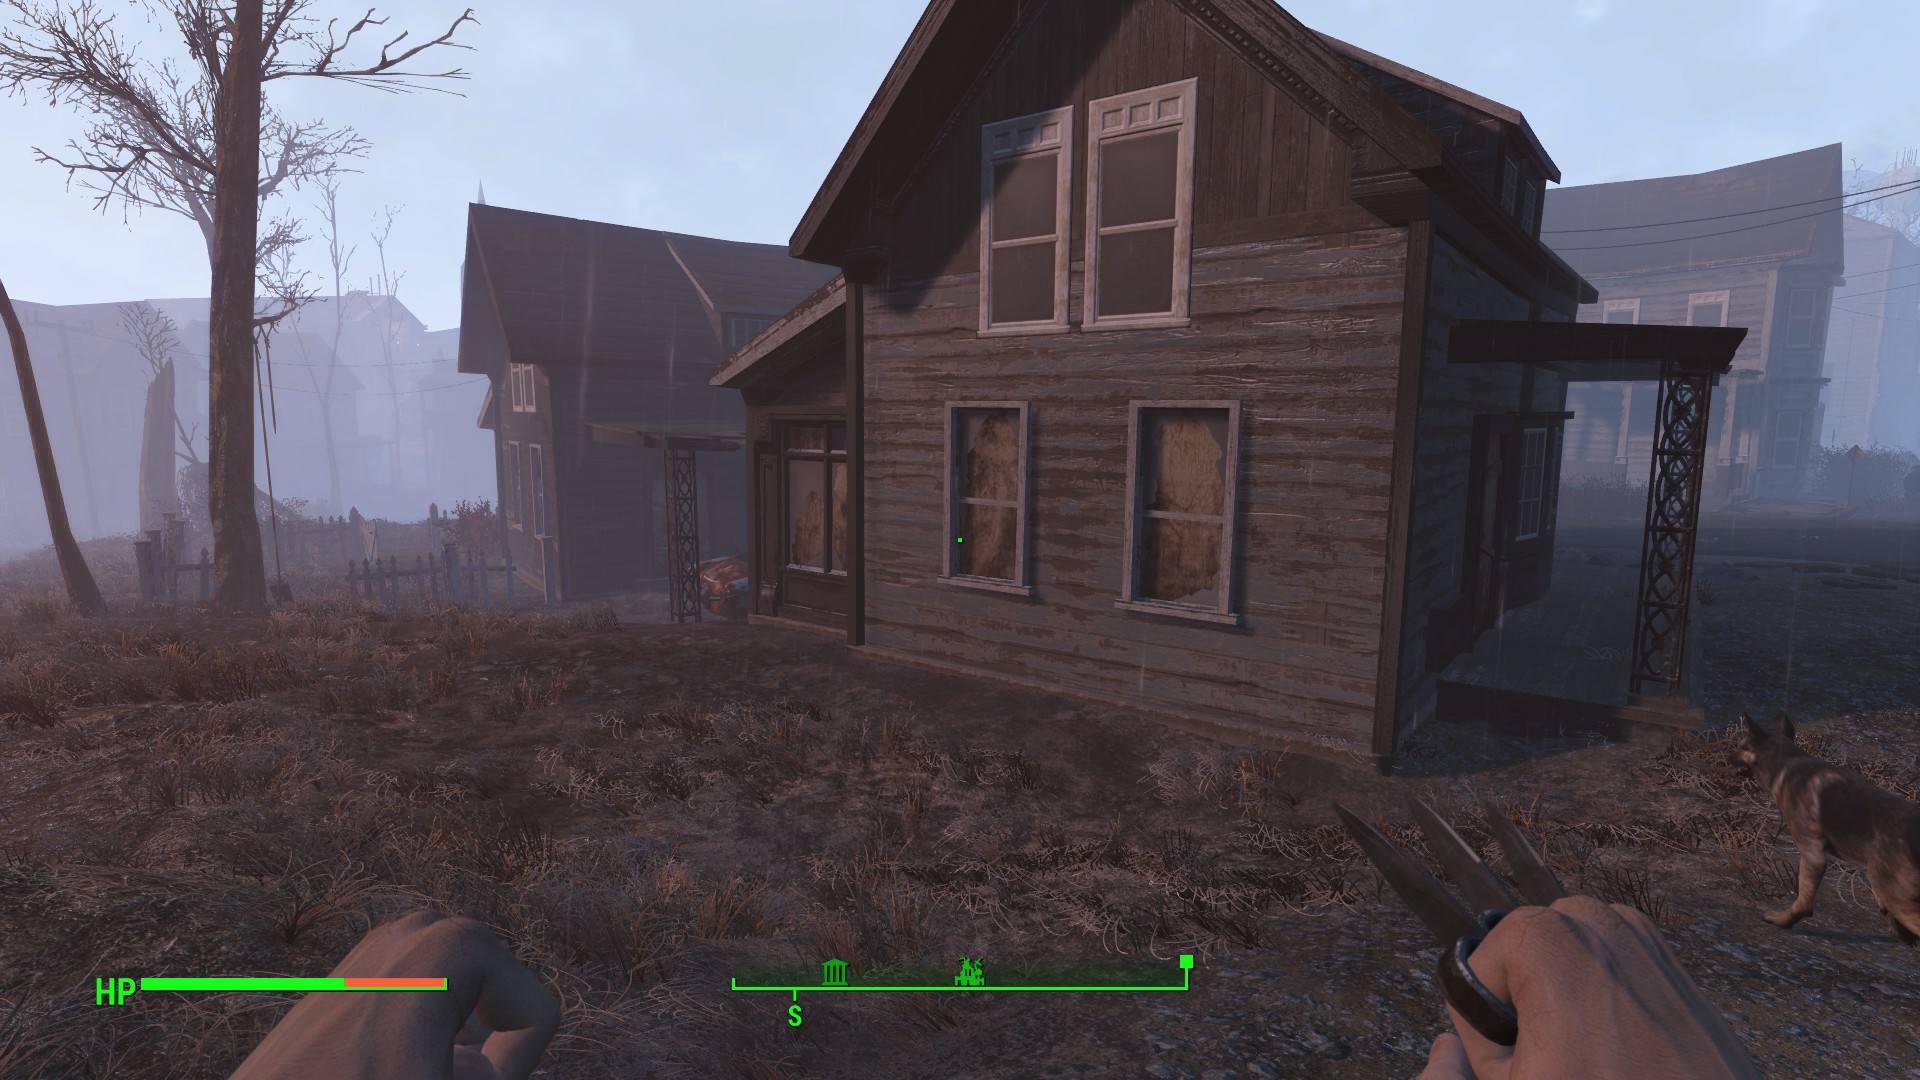 Shadow pop in on PC : fo4